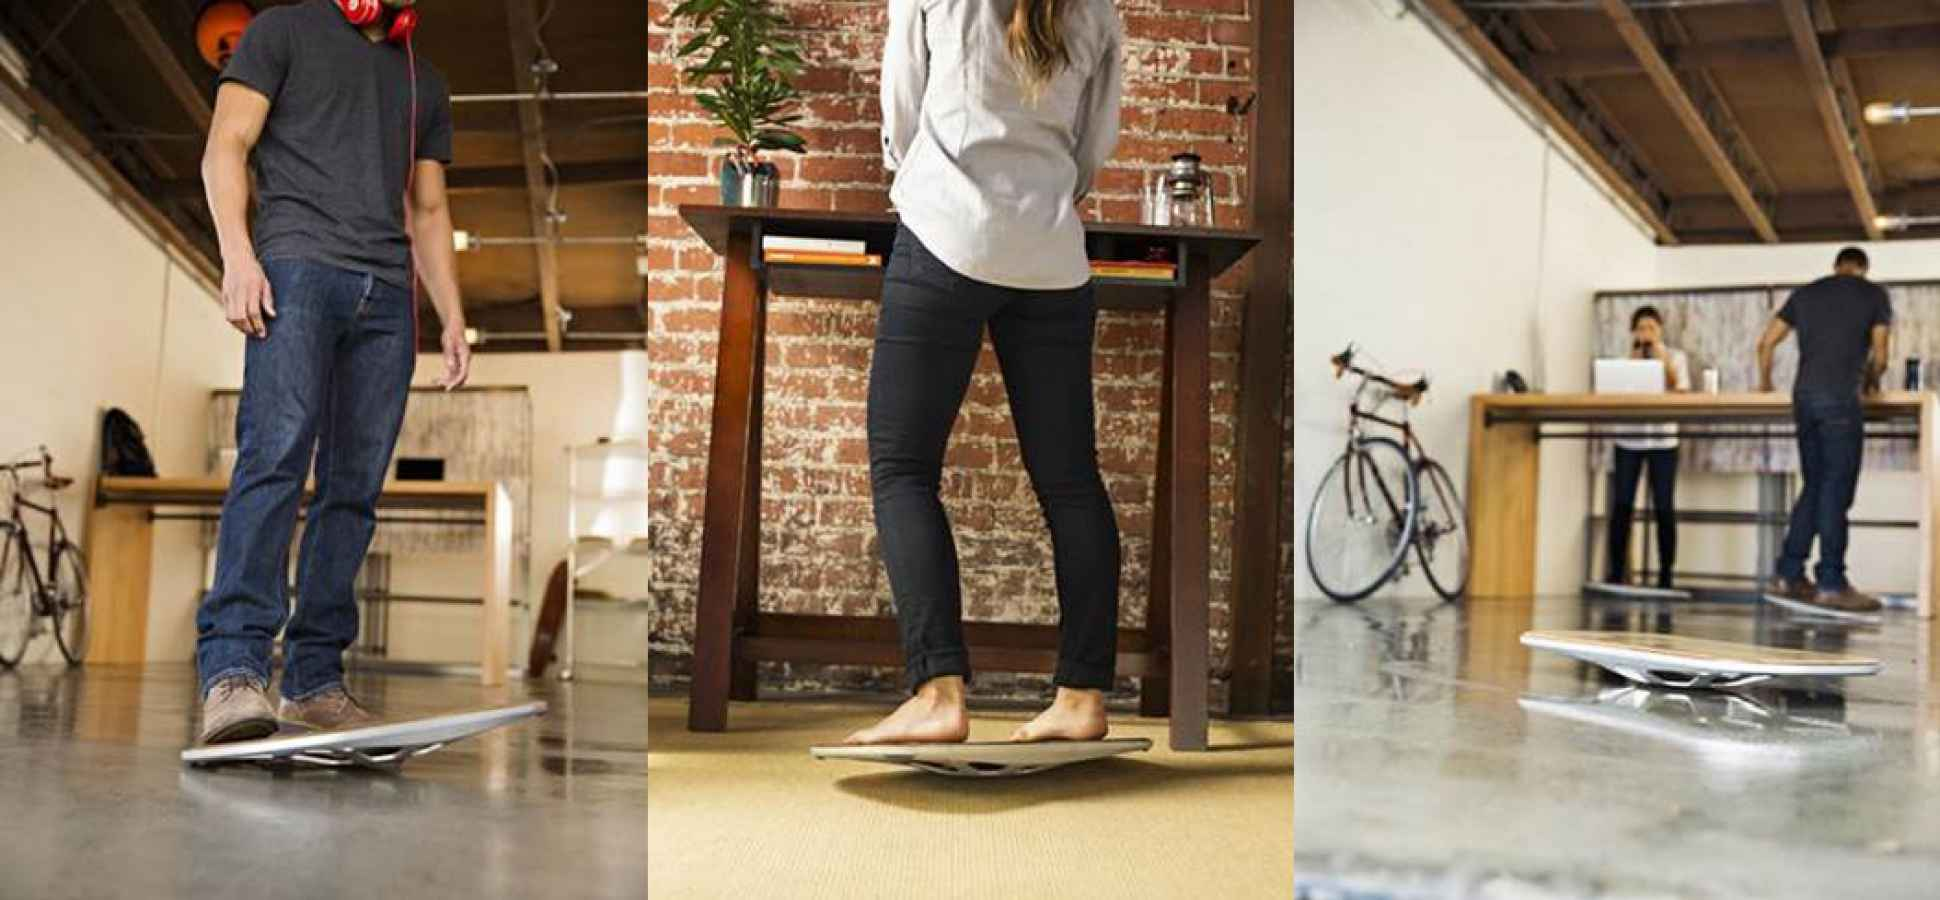 Want a Desk Workout? Try These 5 Gadgets